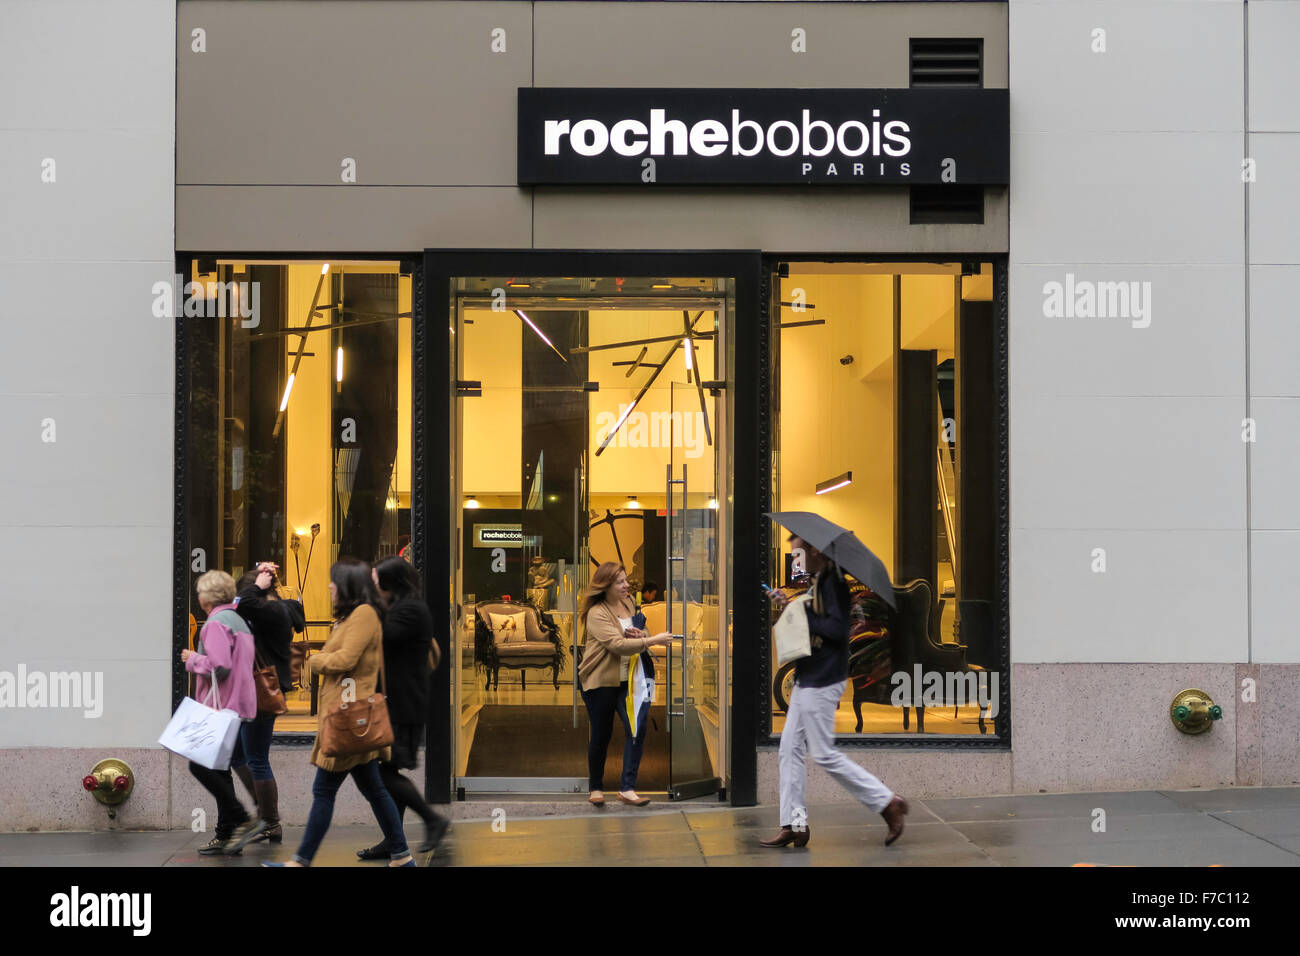 Roche Bobois Furniture Store Nyc Stock Photo Royalty